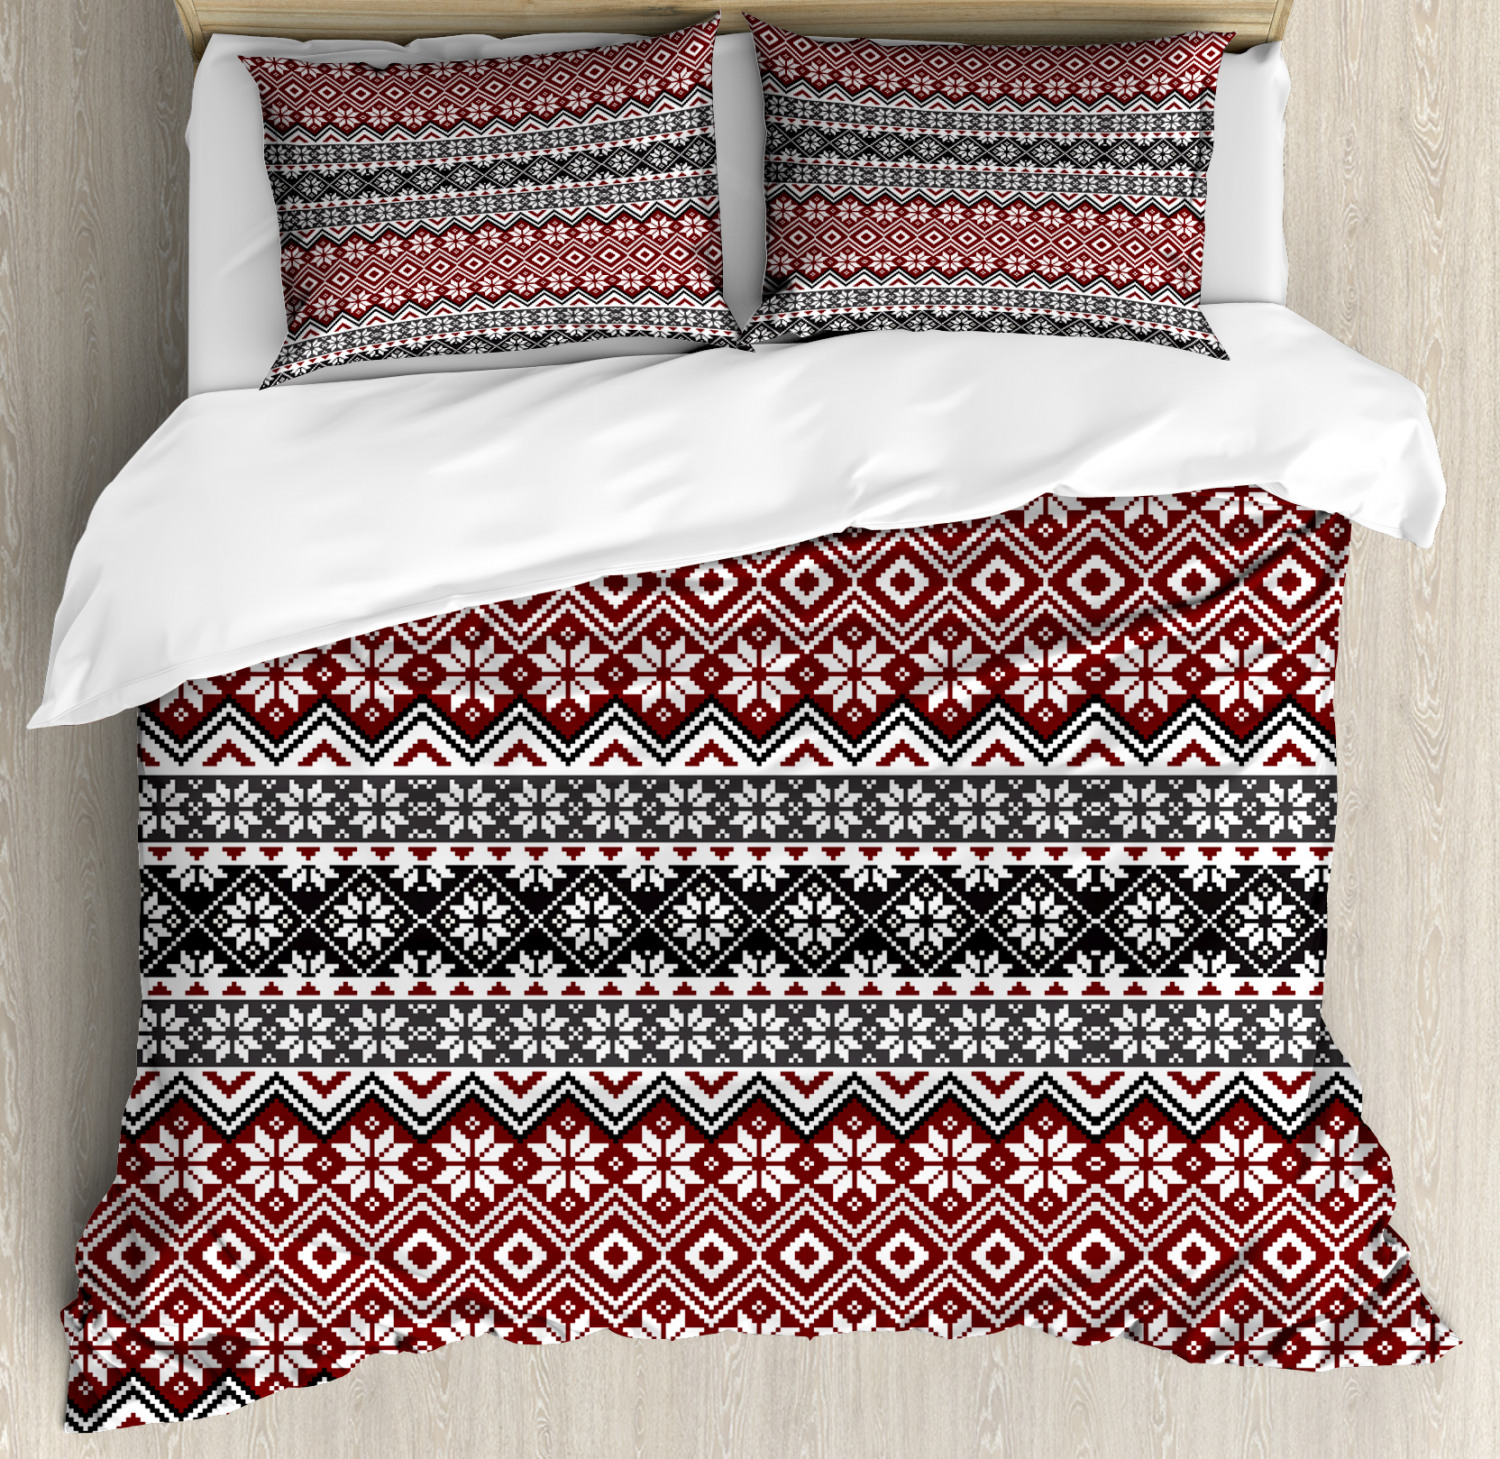 Nordic Duvet Cover Set with Pillow Shams Cultural Christmas Theme Print